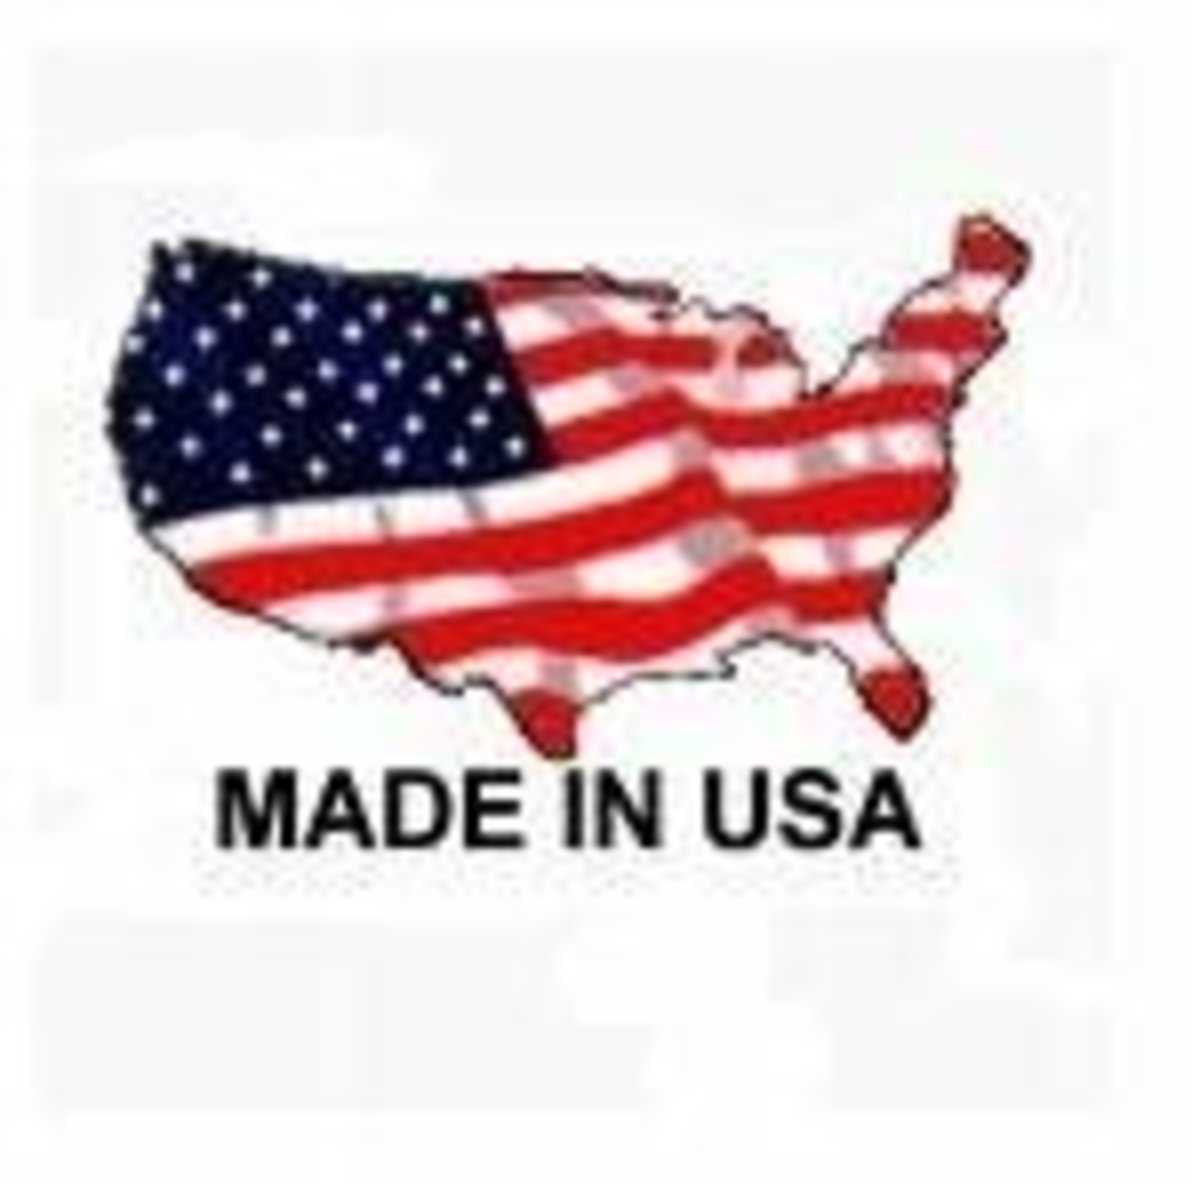 Ceramic Heaters Made in the USA